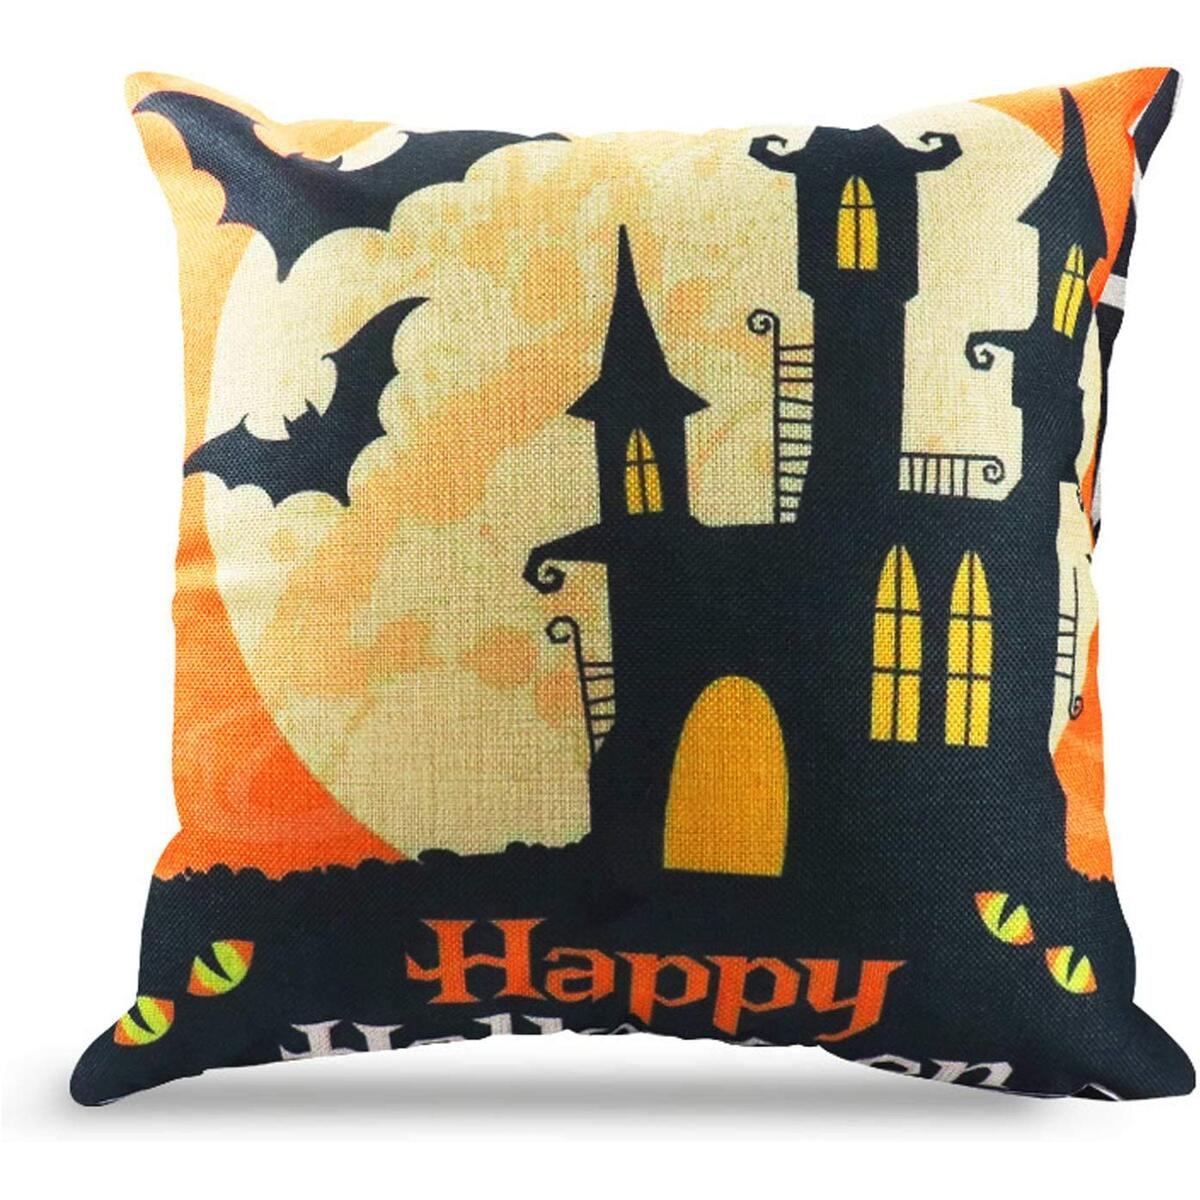 WEYON Happy Halloween Throw Pillow Covers 18 x 18 Inch Owl/Bat/Witch/Castle Theme Sofa Home Decorative Cotton Linen Cushion Covers Set of 4 m,Sold by CHUDAO